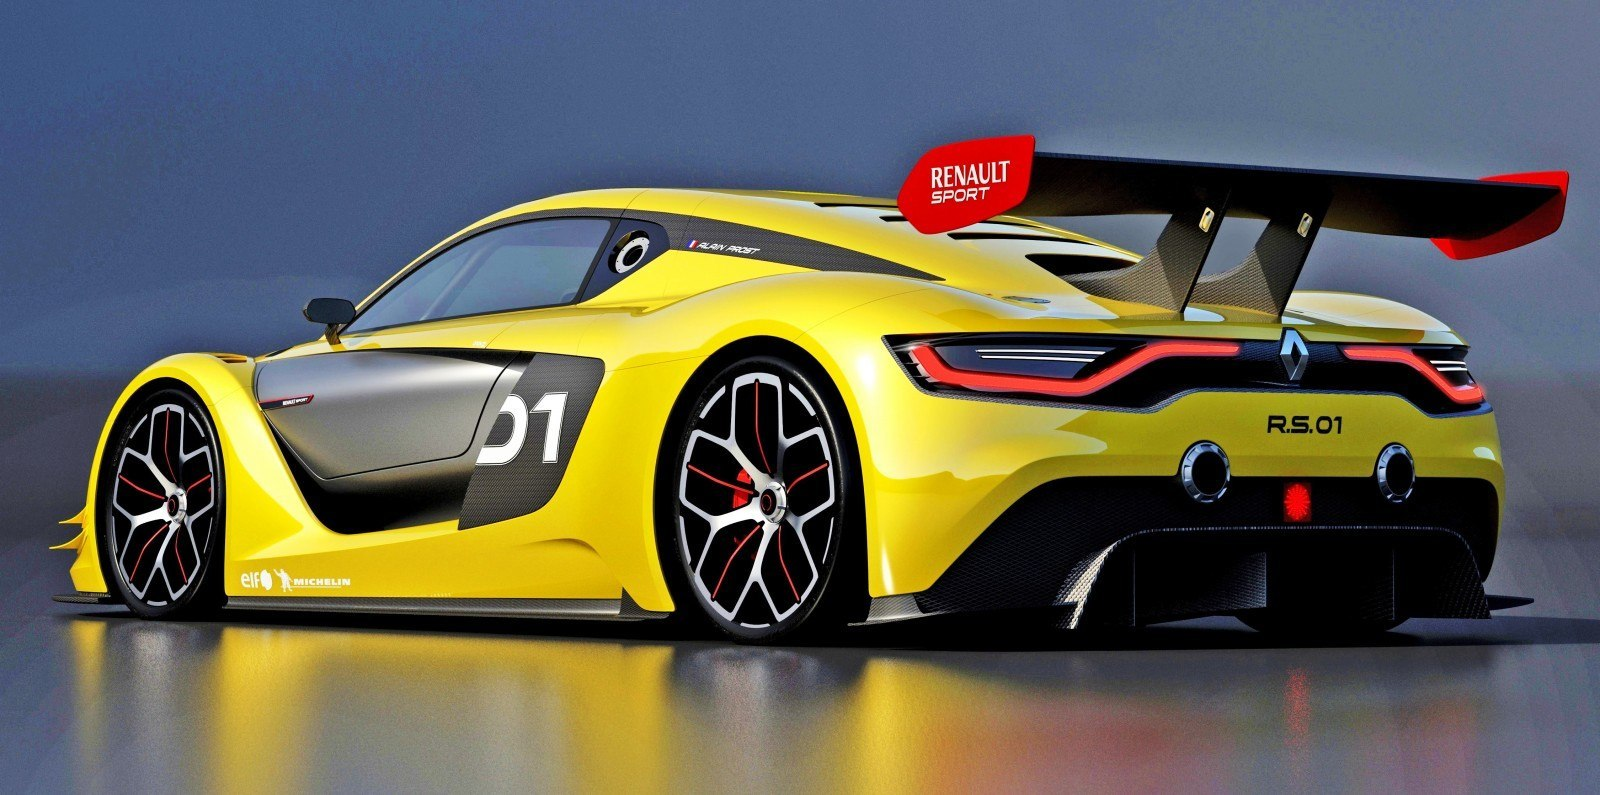 2019 Renault Sport RS 01 photo - 1